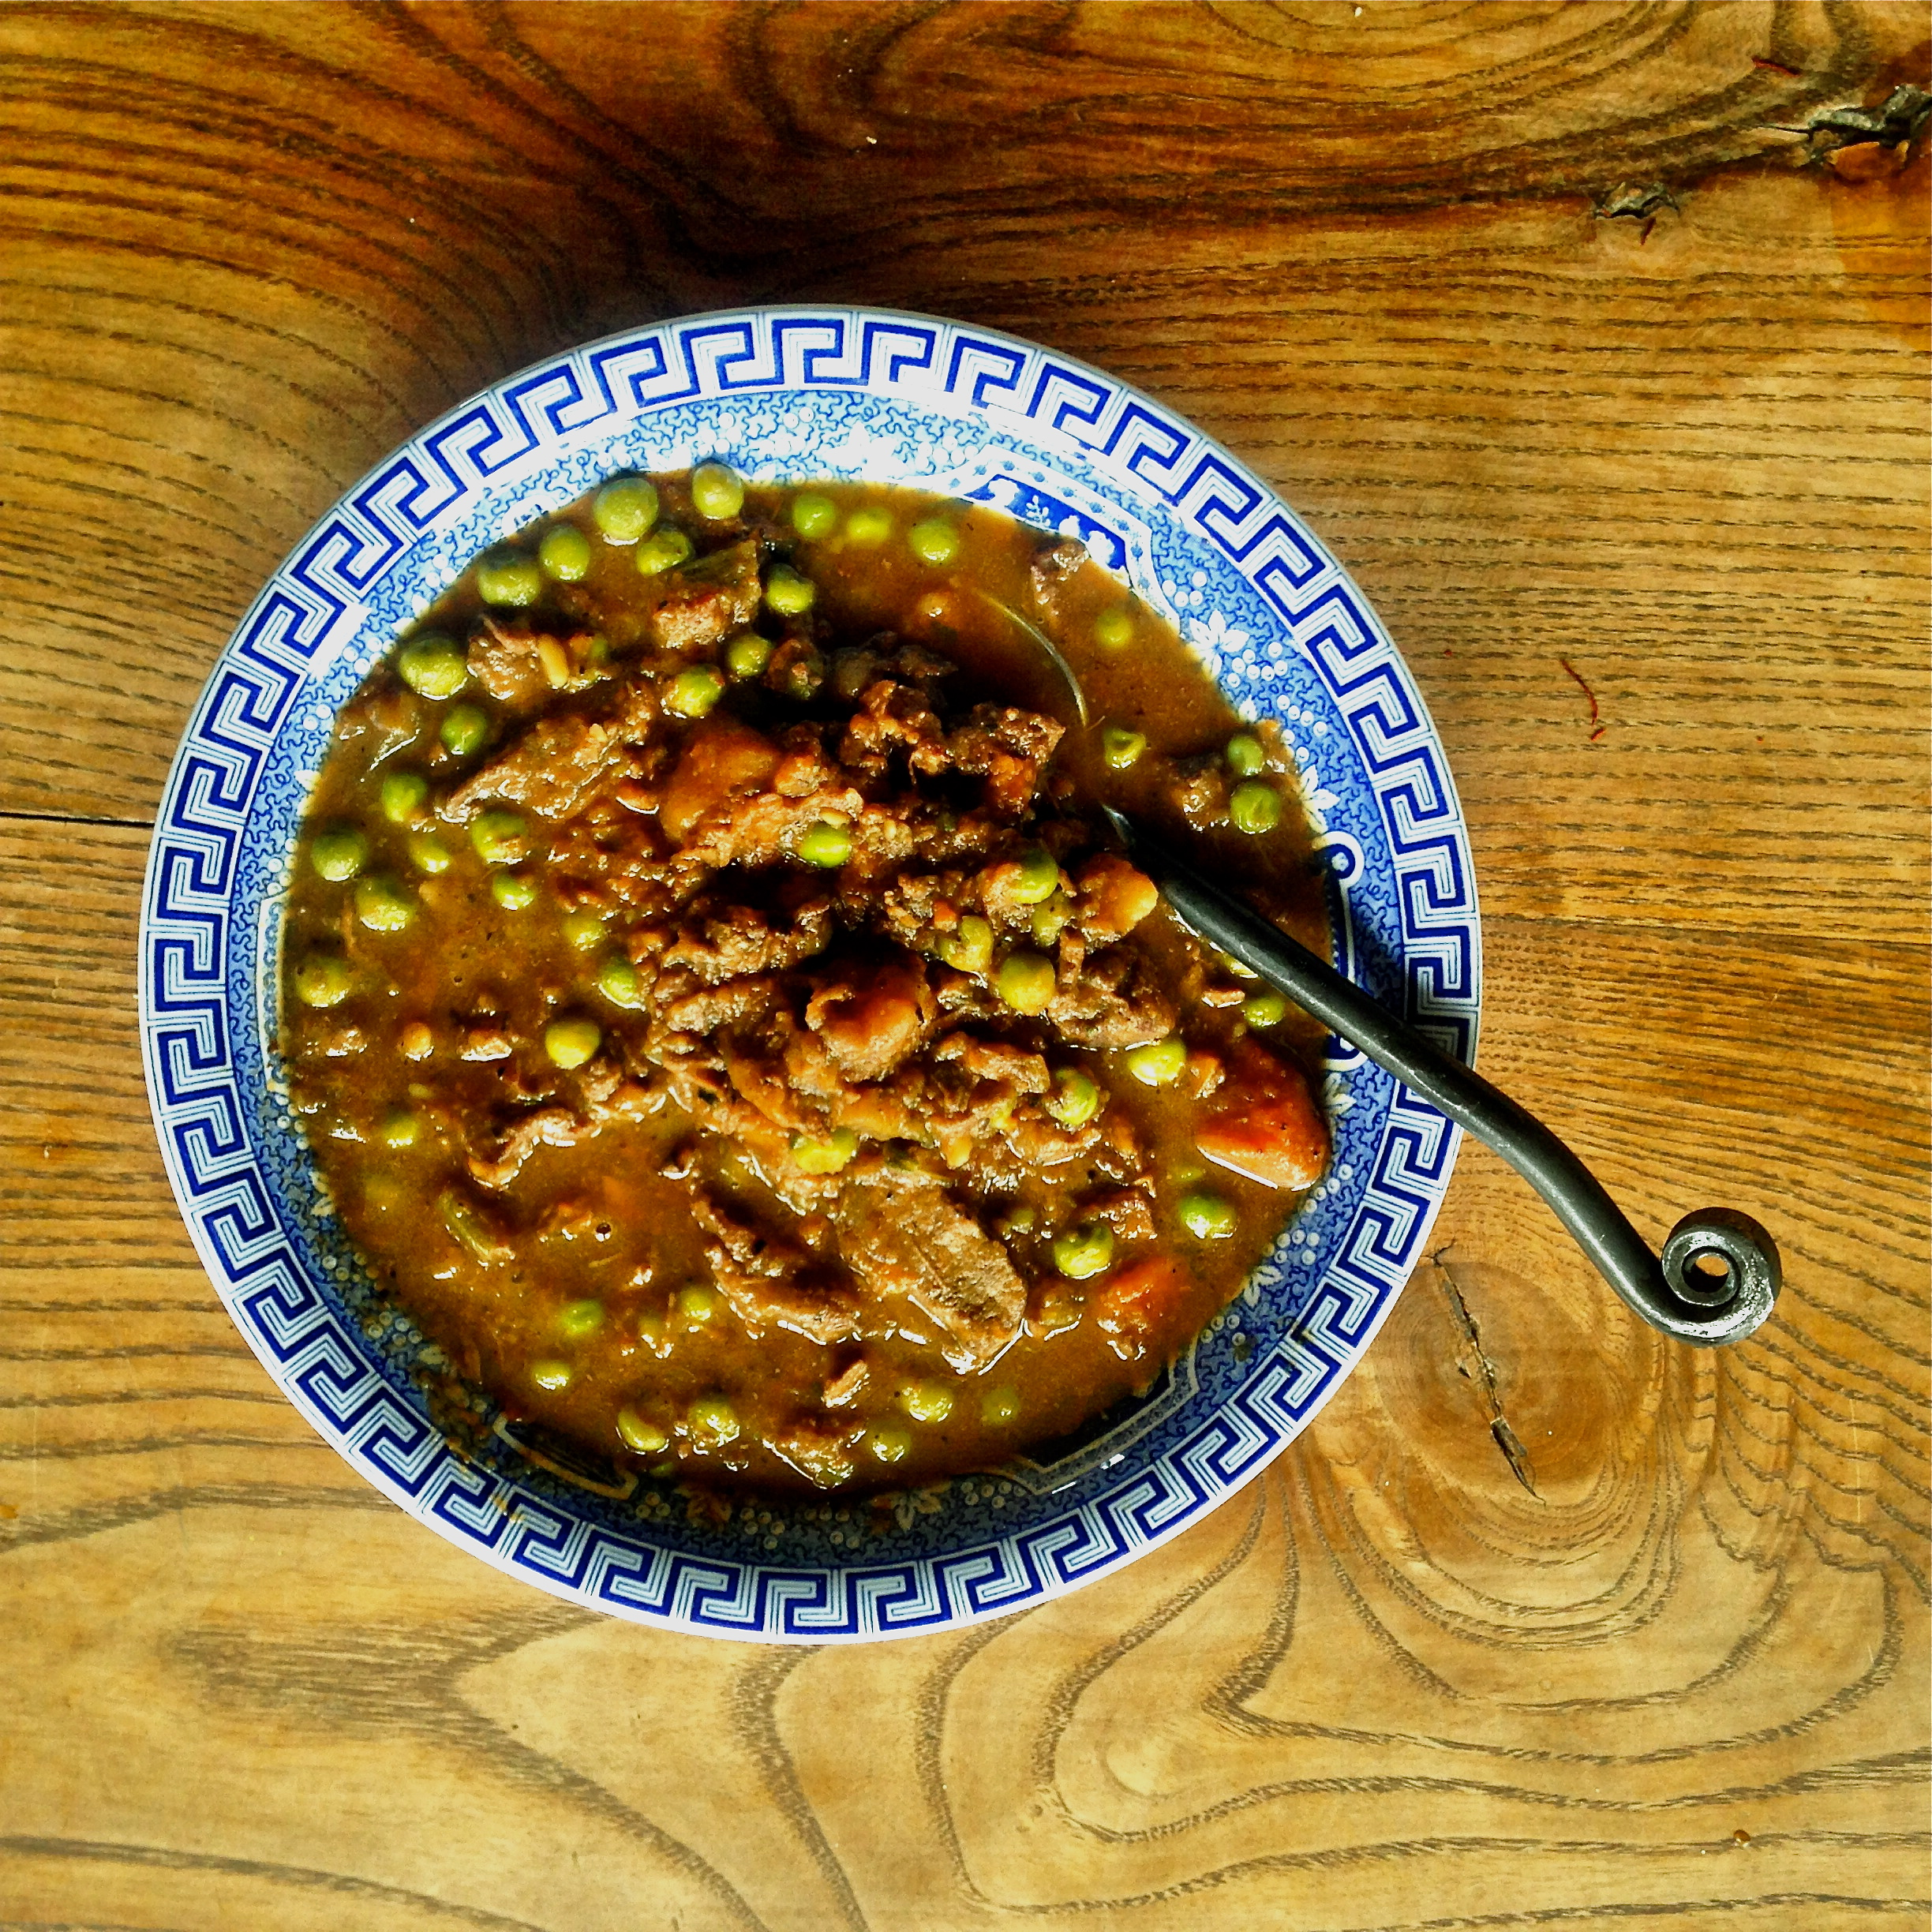 Venison Stew with mushrooms, carrots, peas and red wine.